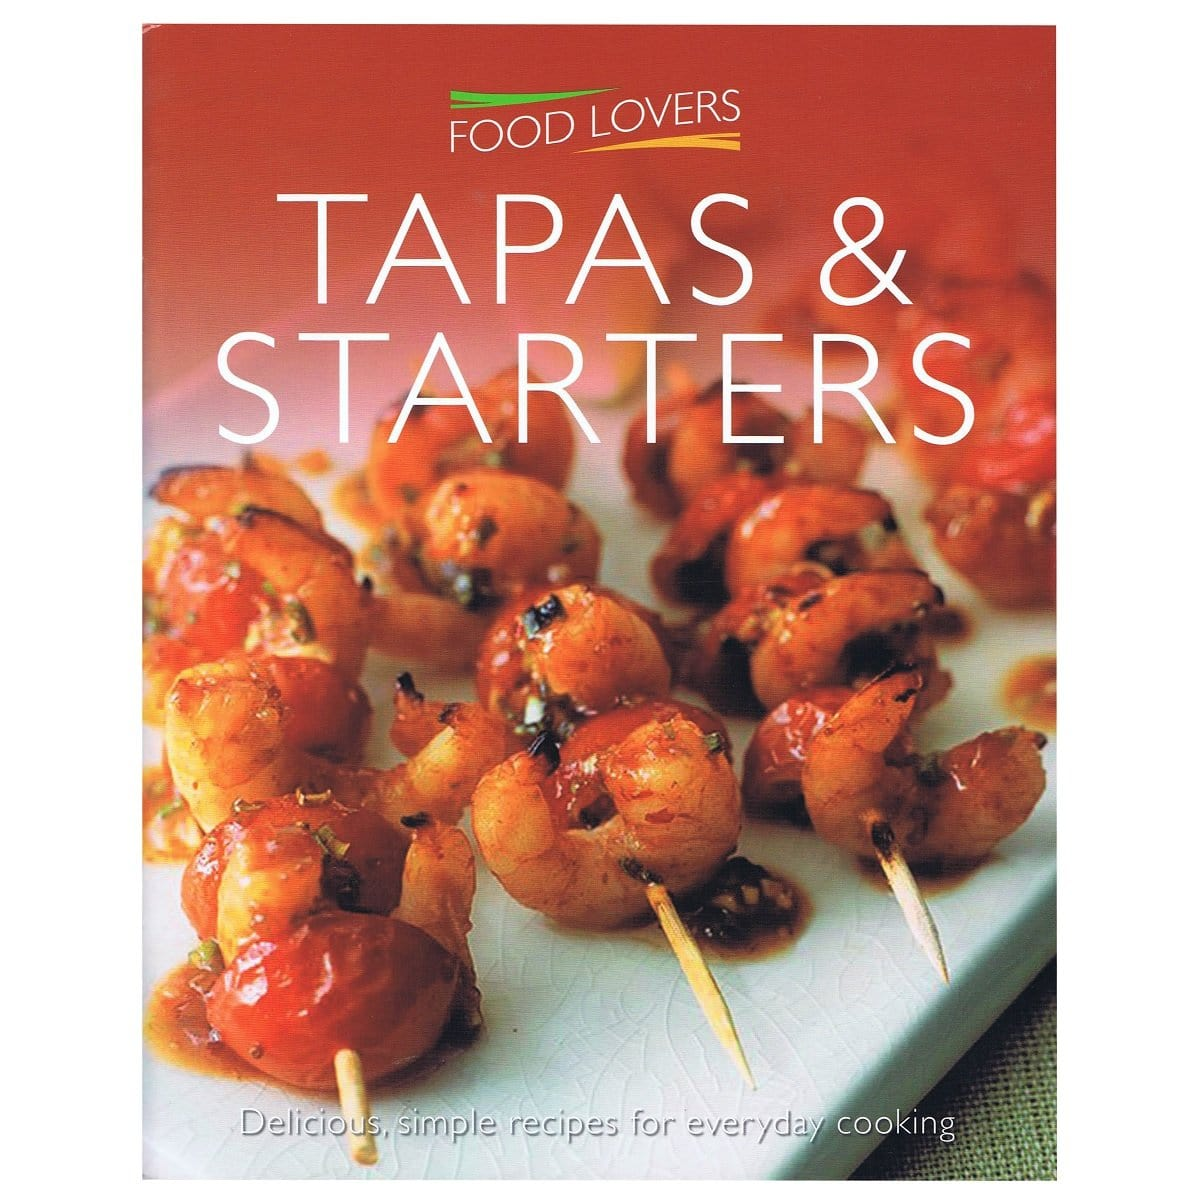 Food Lovers : Tapas and Starters Delicious, Simple Recipes for Everyday Cooking